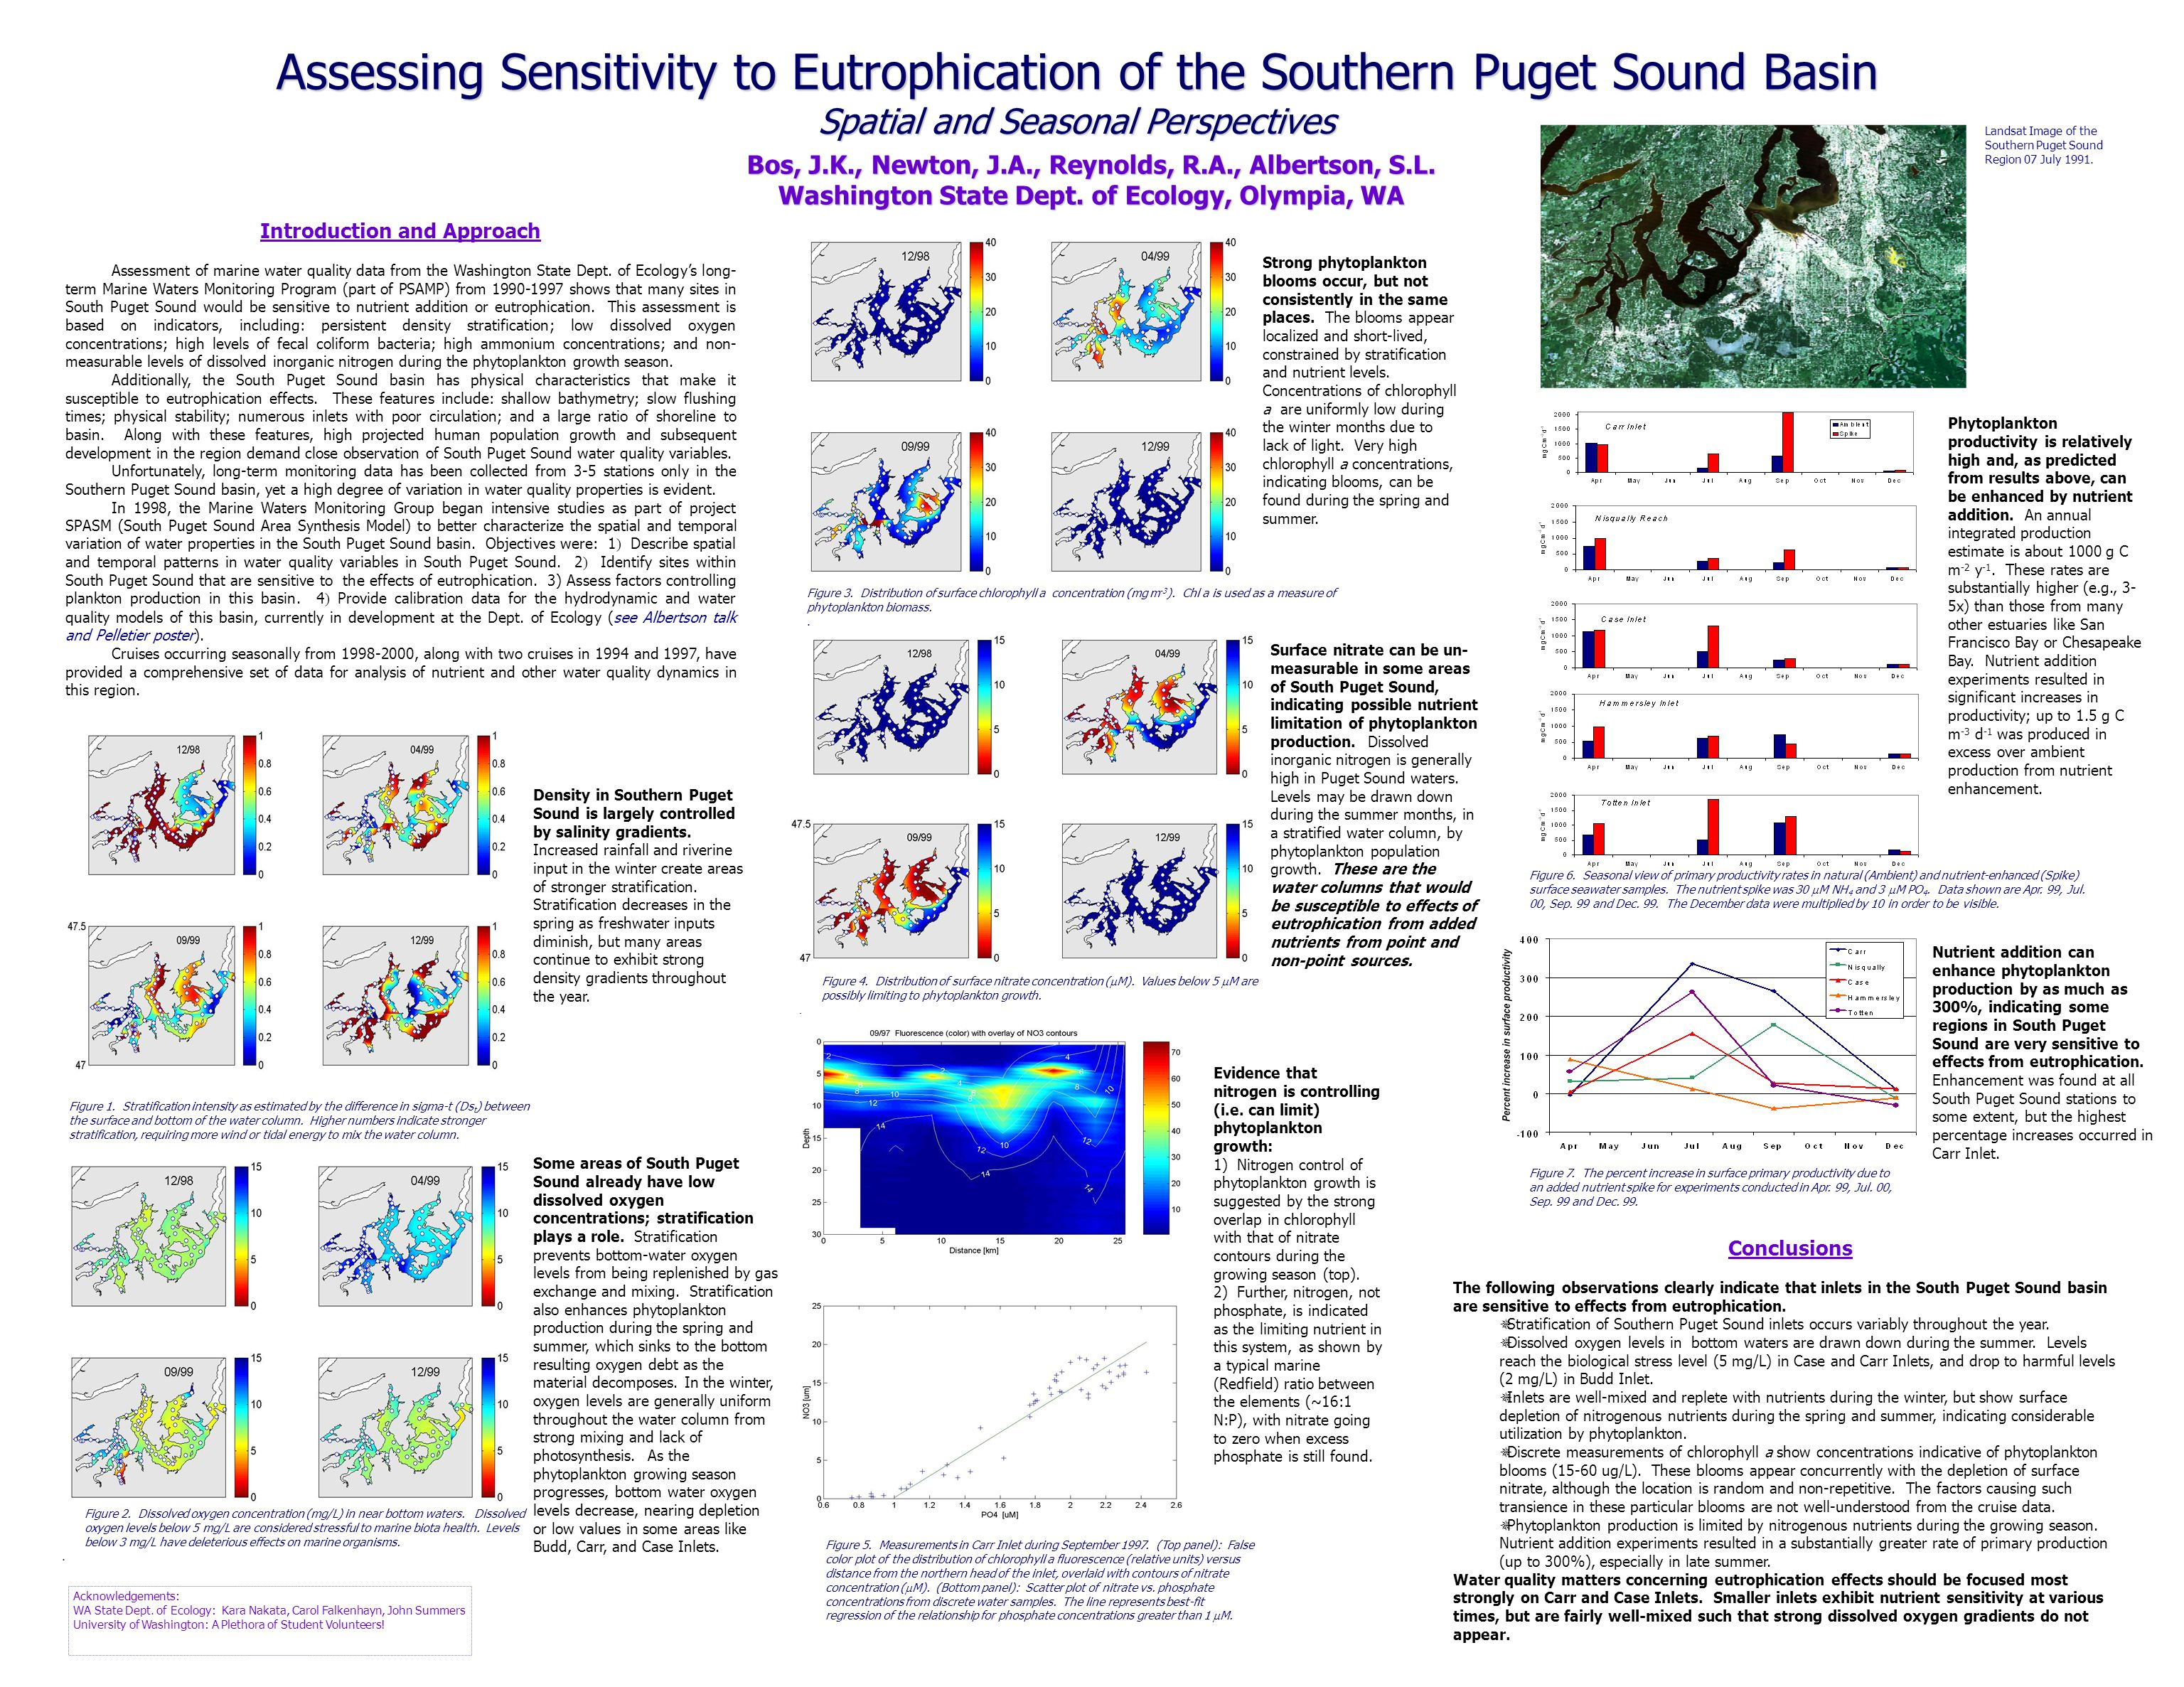 Assessing Sensitivity to Eutrophication of the Southern Puget Sound Basin Bos, J.K., Newton, J.A., Reynolds, R.A., Albertson, S.L.